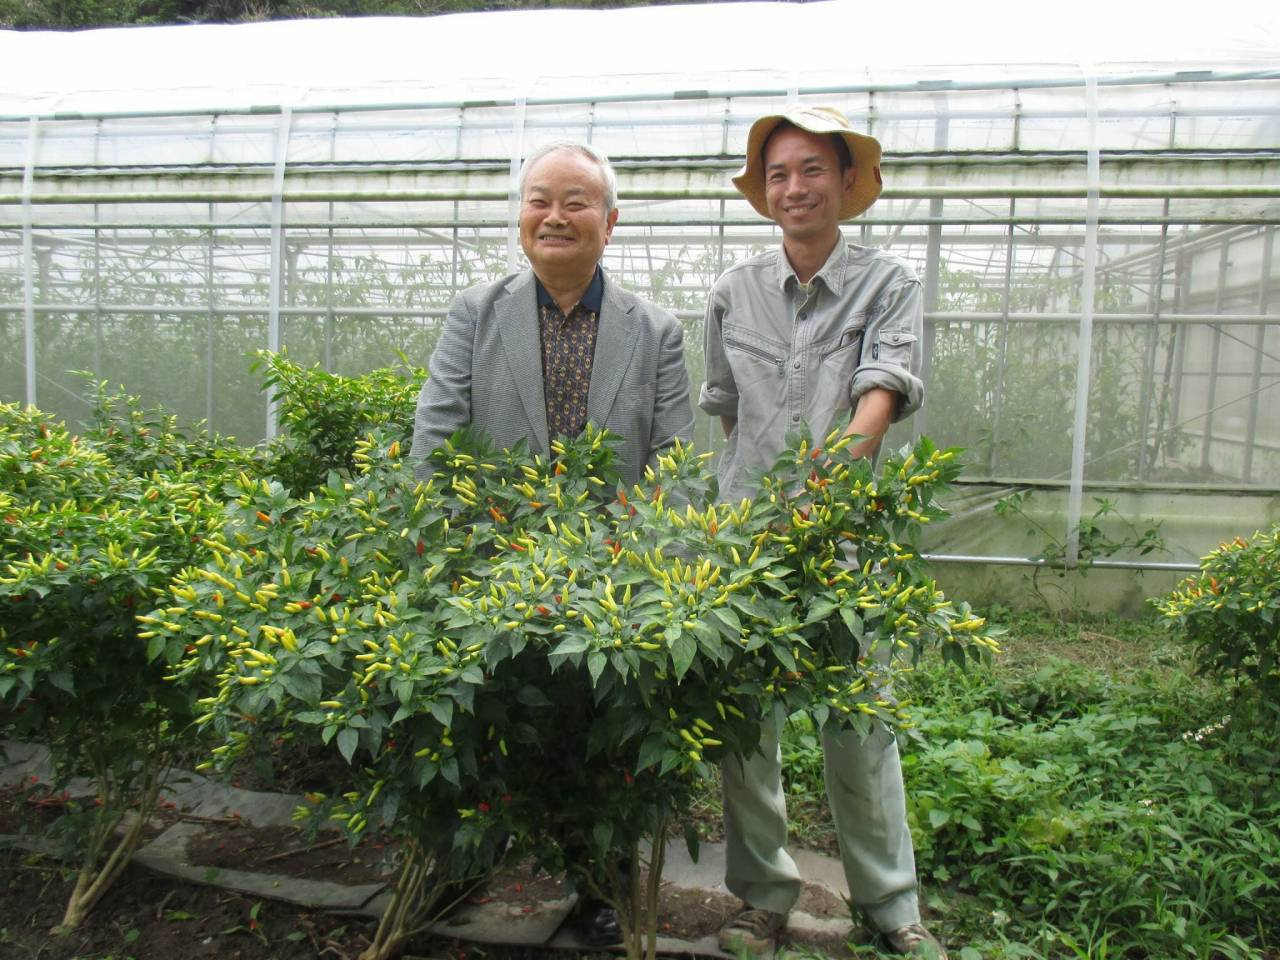 Prof. Higa and the manager of the farm